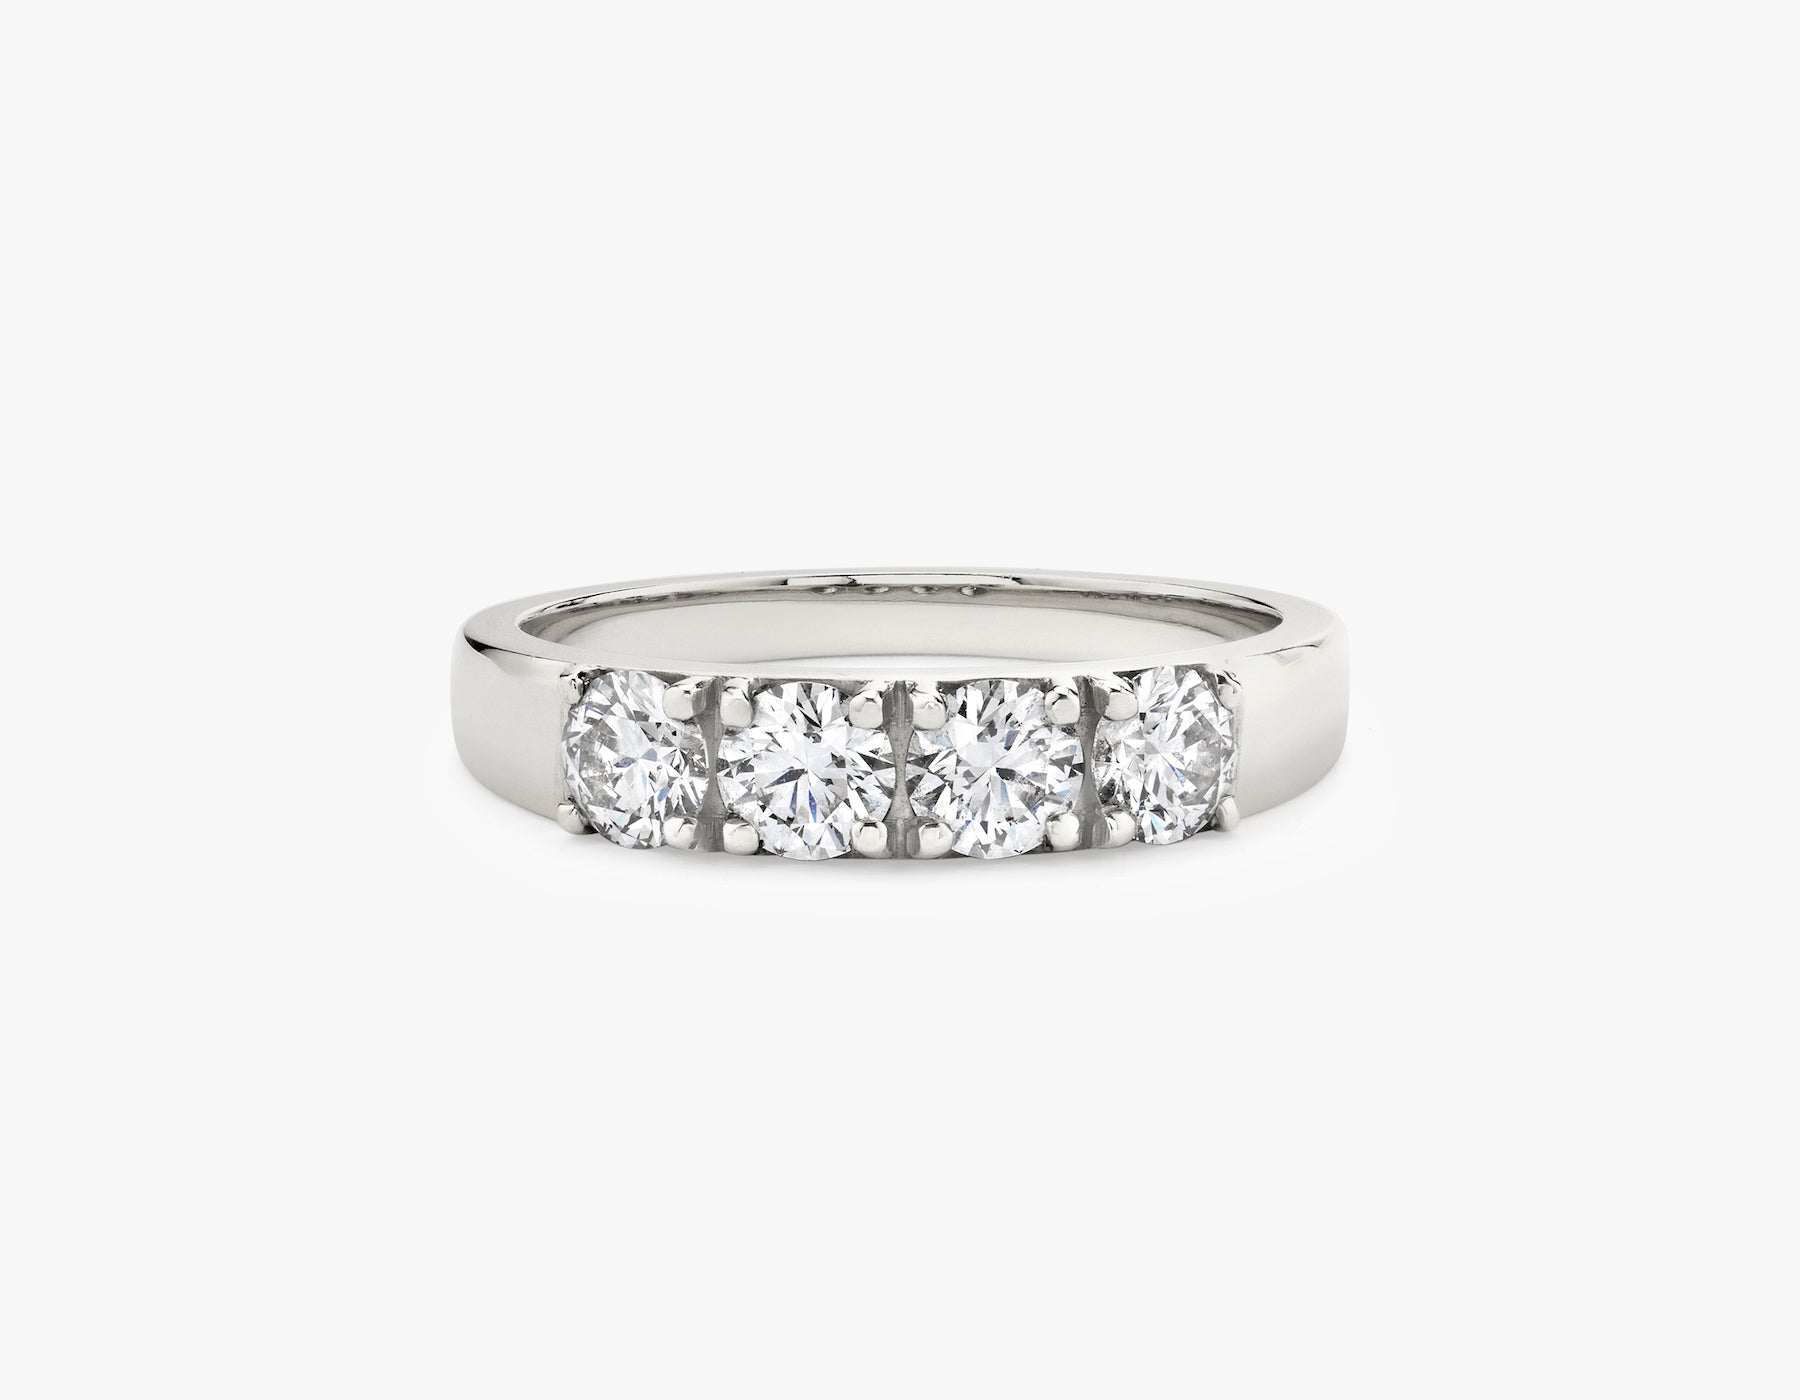 Vrai simple minimalist Round Diamond Tetrad Band .25ct Round Brilliant Diamond Ring, 14K White Gold